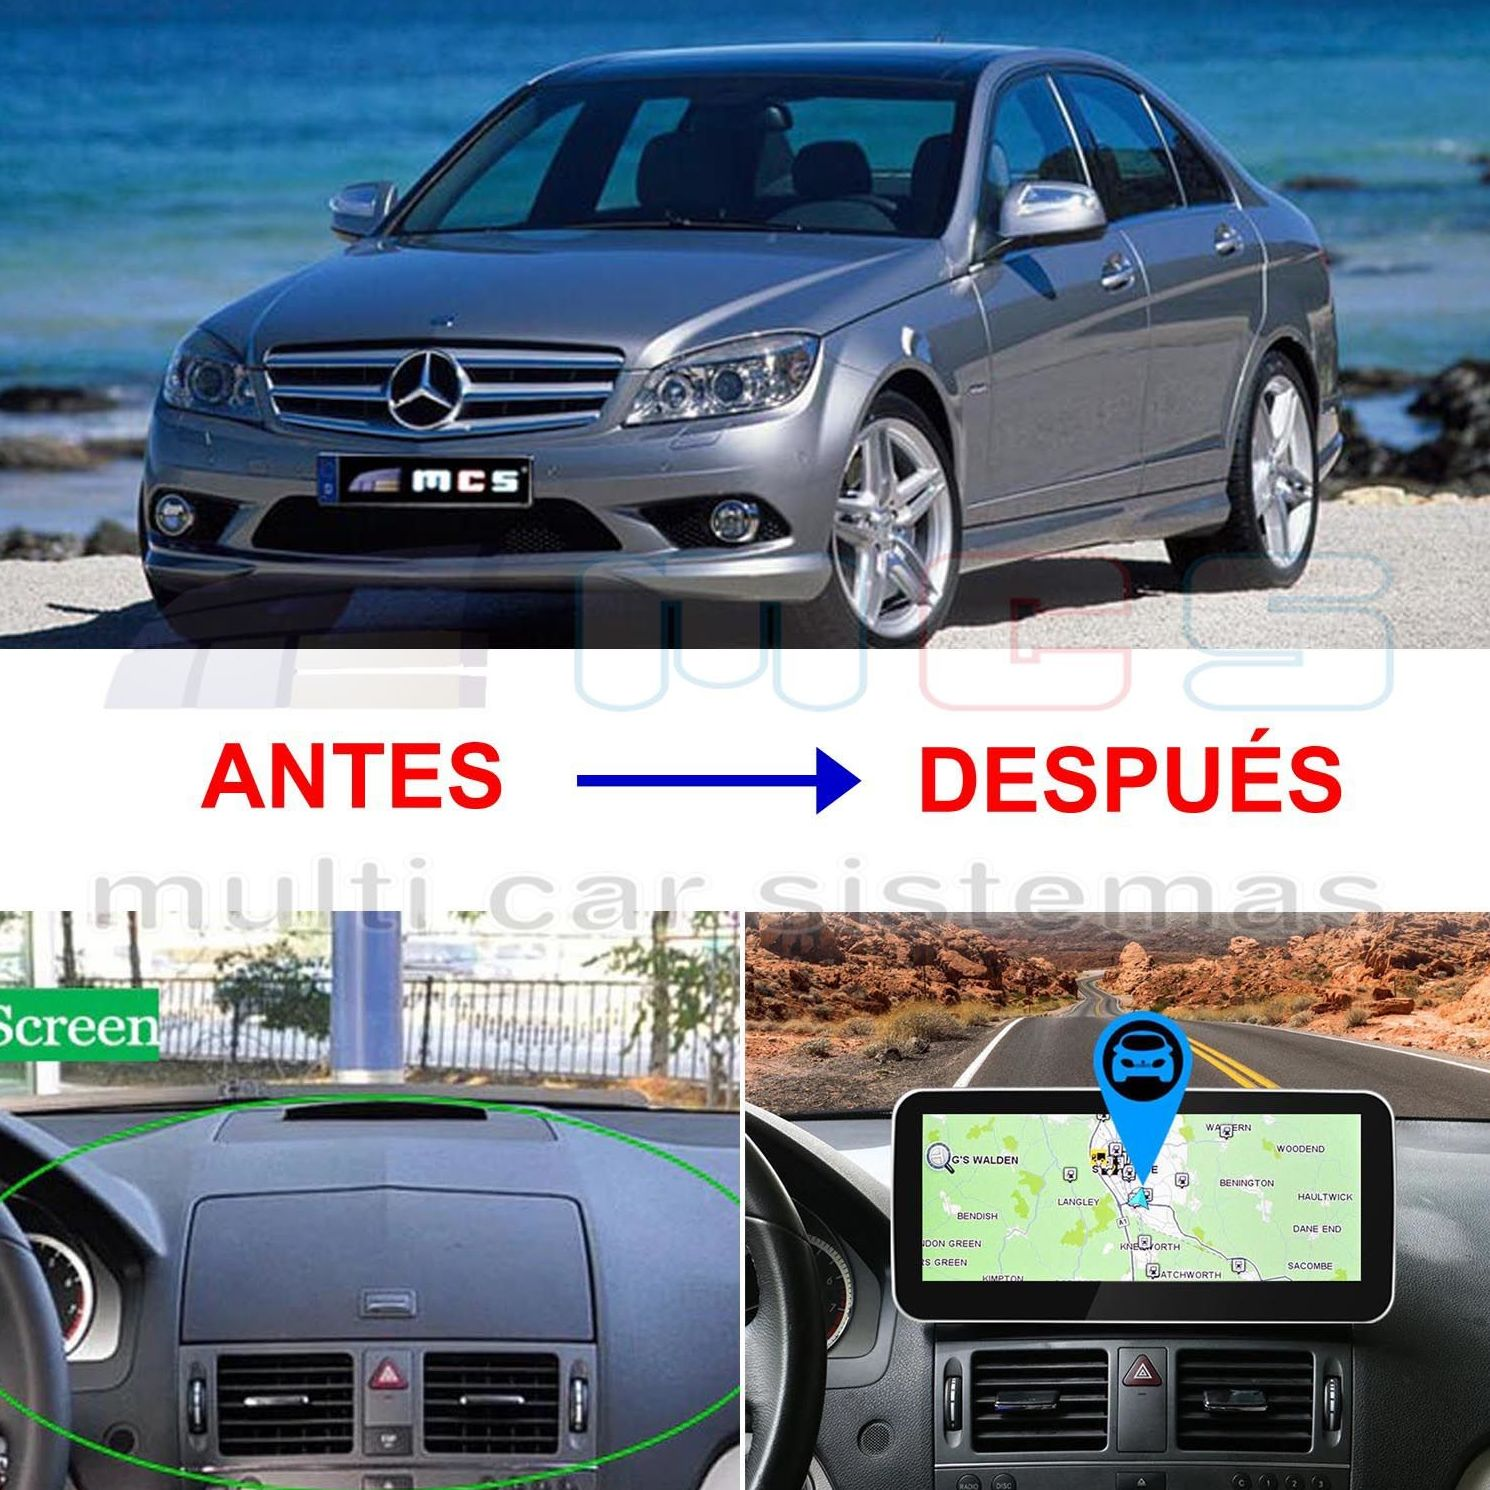 Monitor Pantalla táctil Android Mercedes Benz Clase C W204 Prestyling Audio 20 APS-50 Comand NTG-4 NTG4